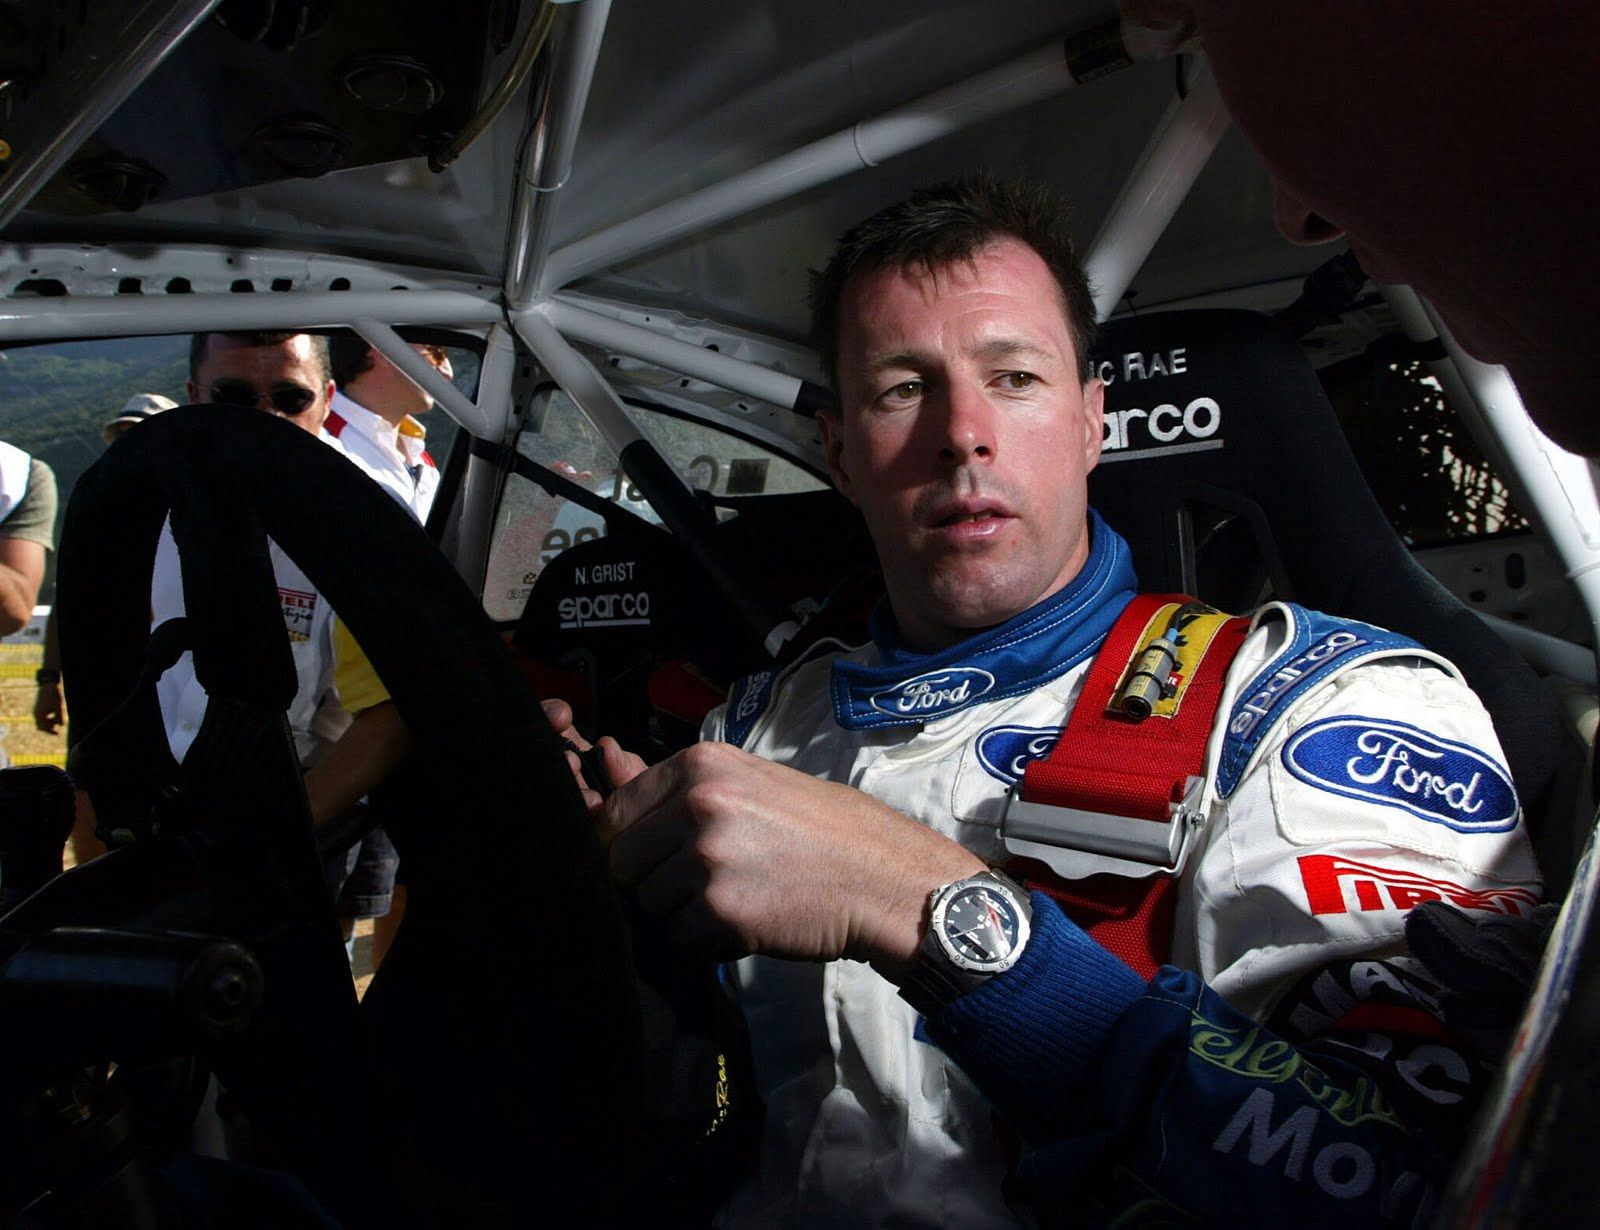 colin mcrae mis h roes favoritos pinterest subaru rally and ford. Black Bedroom Furniture Sets. Home Design Ideas